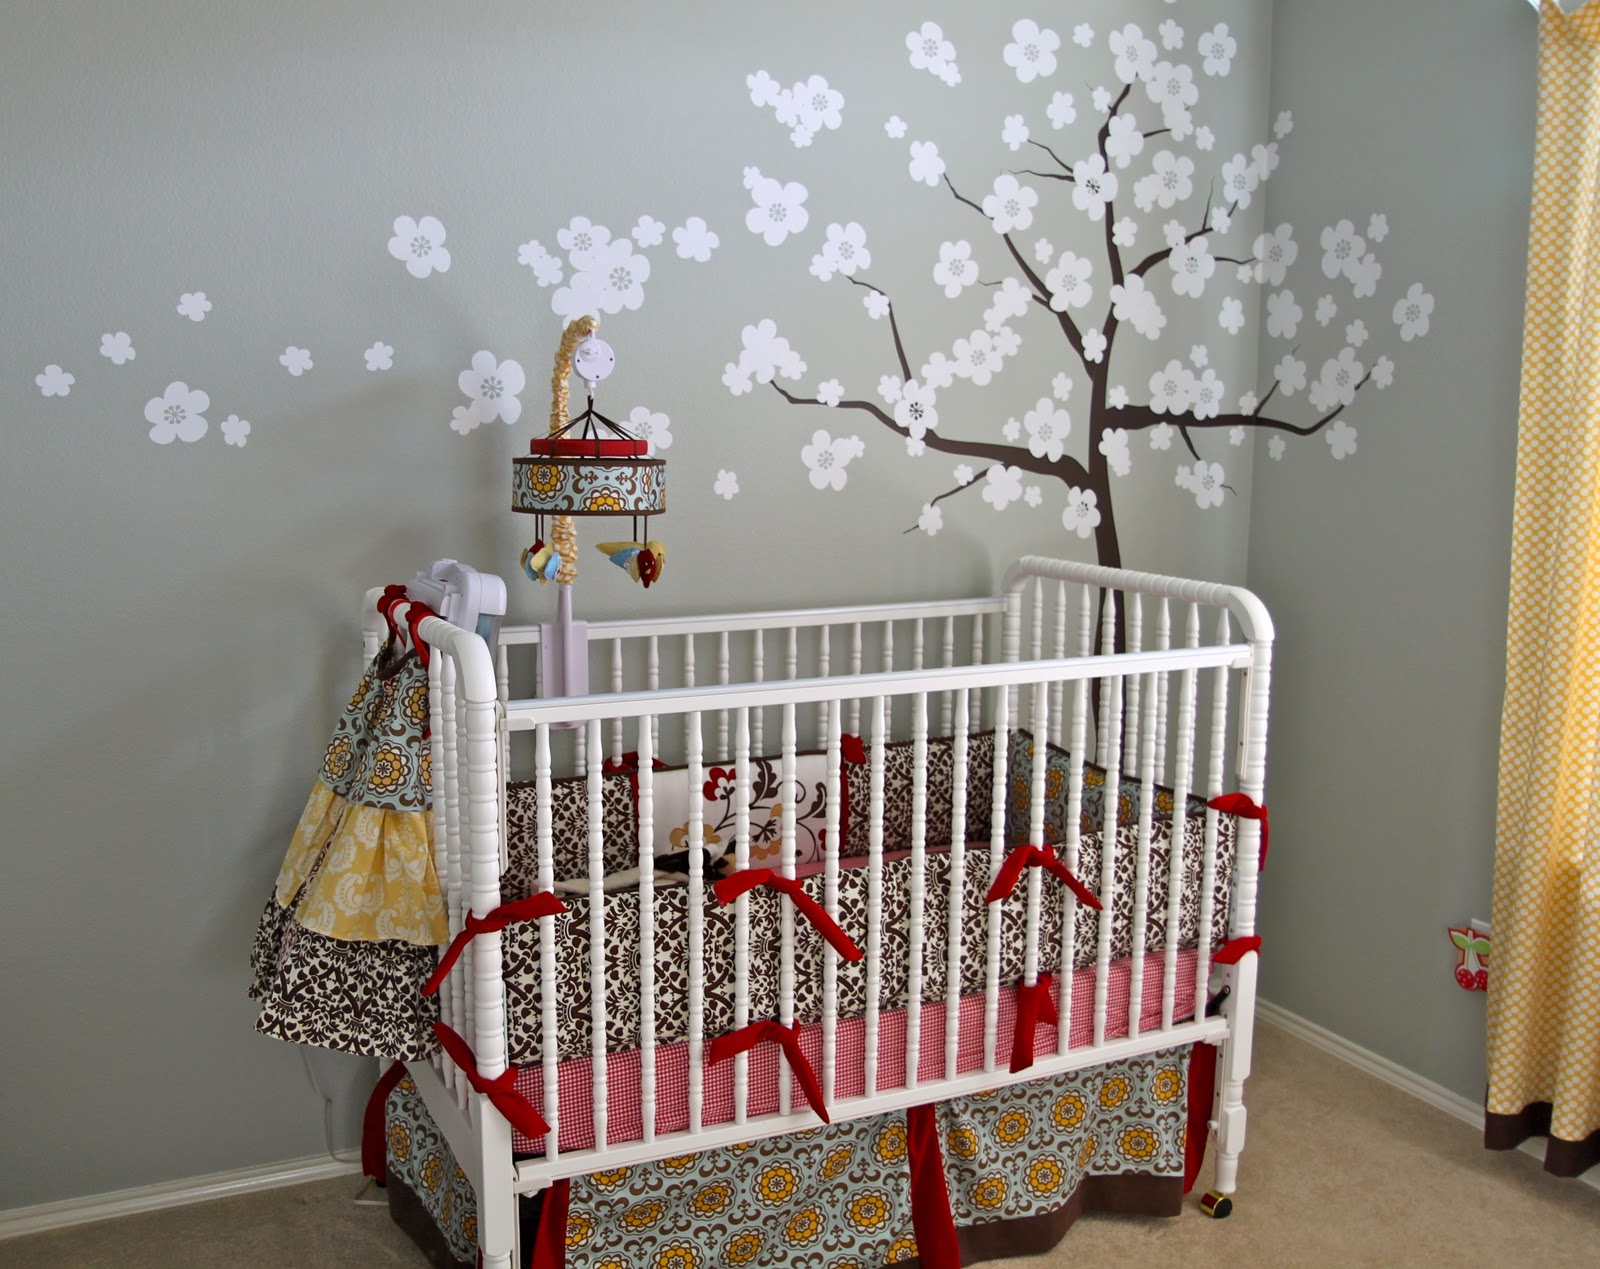 Baby nursery it 39 s quirky and so cute design dazzle for Simple nursery design